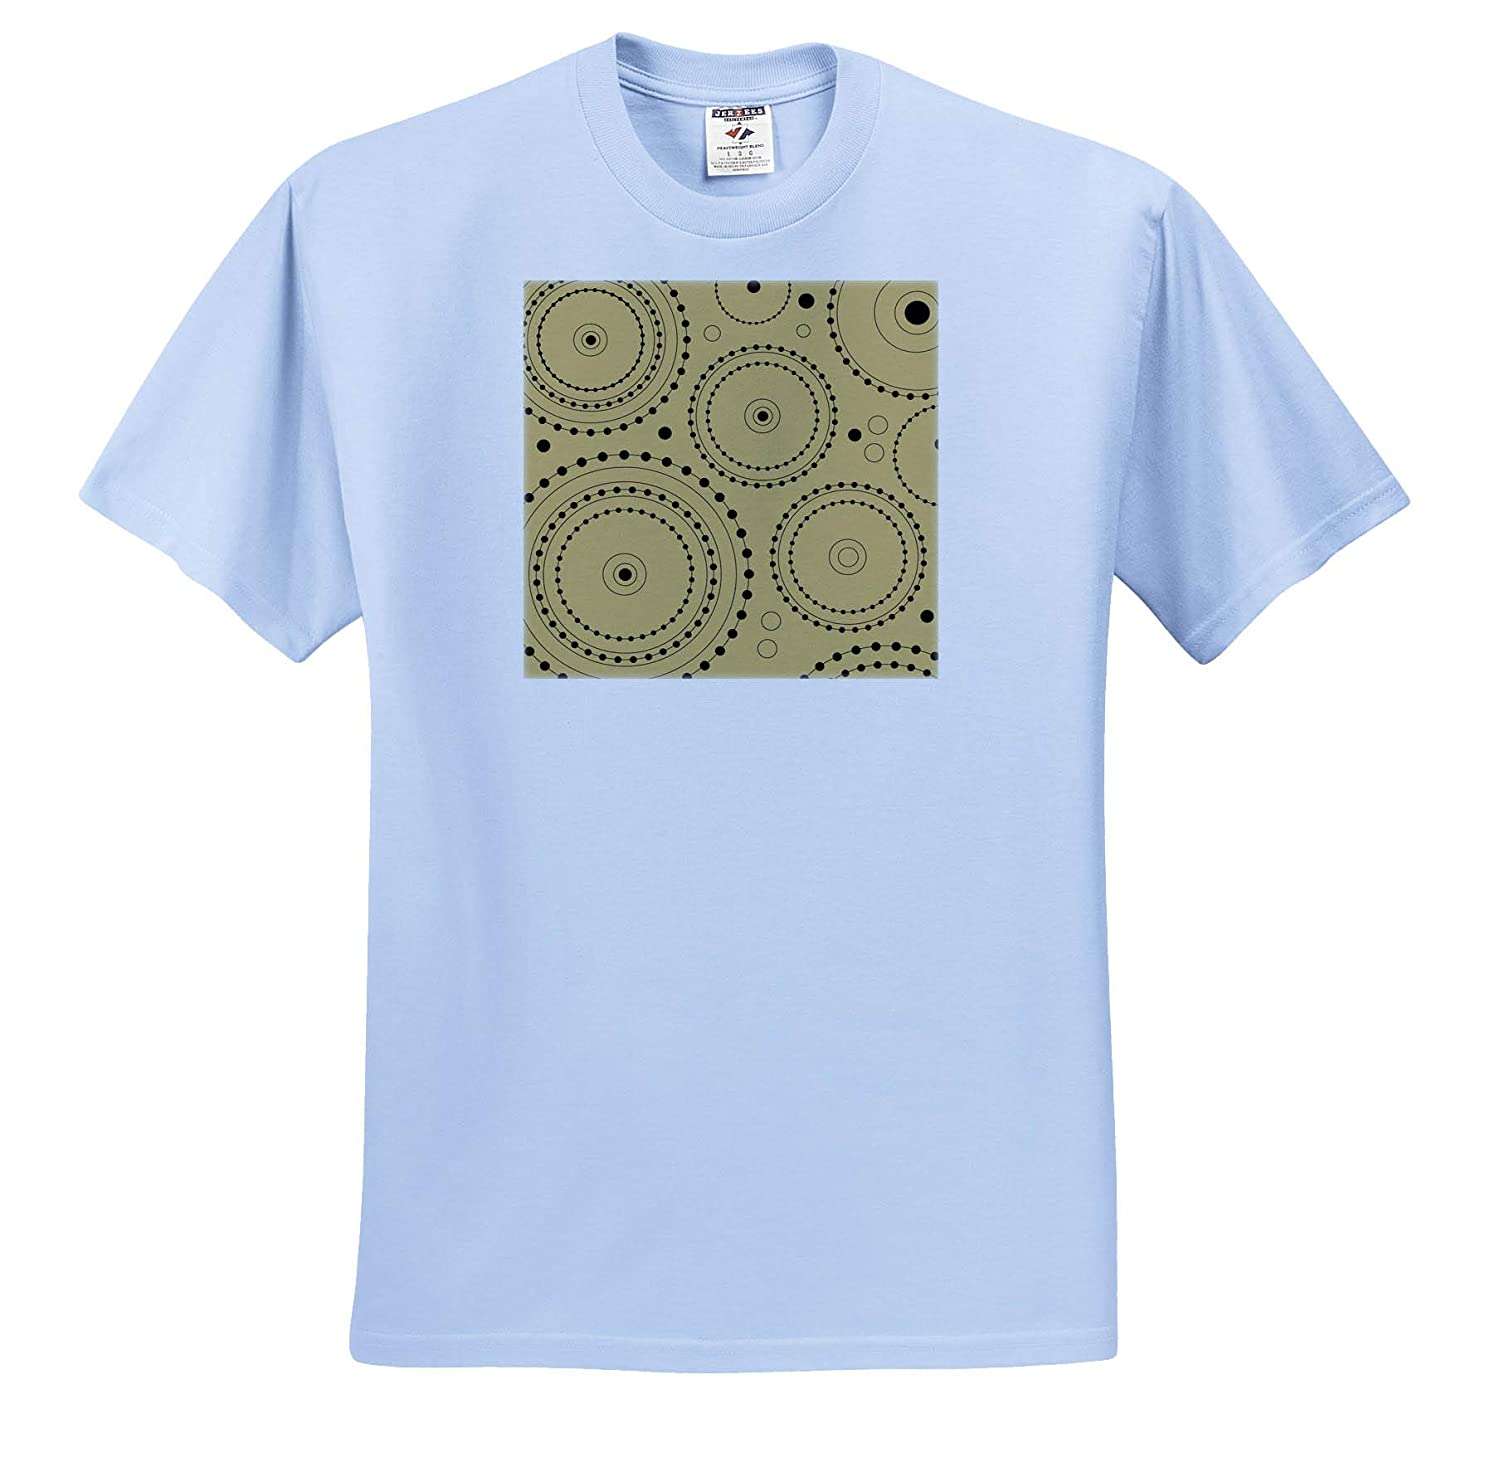 Circles on Rings in Black on Faux Gold Color - T-Shirts Geometric Designs 3dRose Natalie Paskell